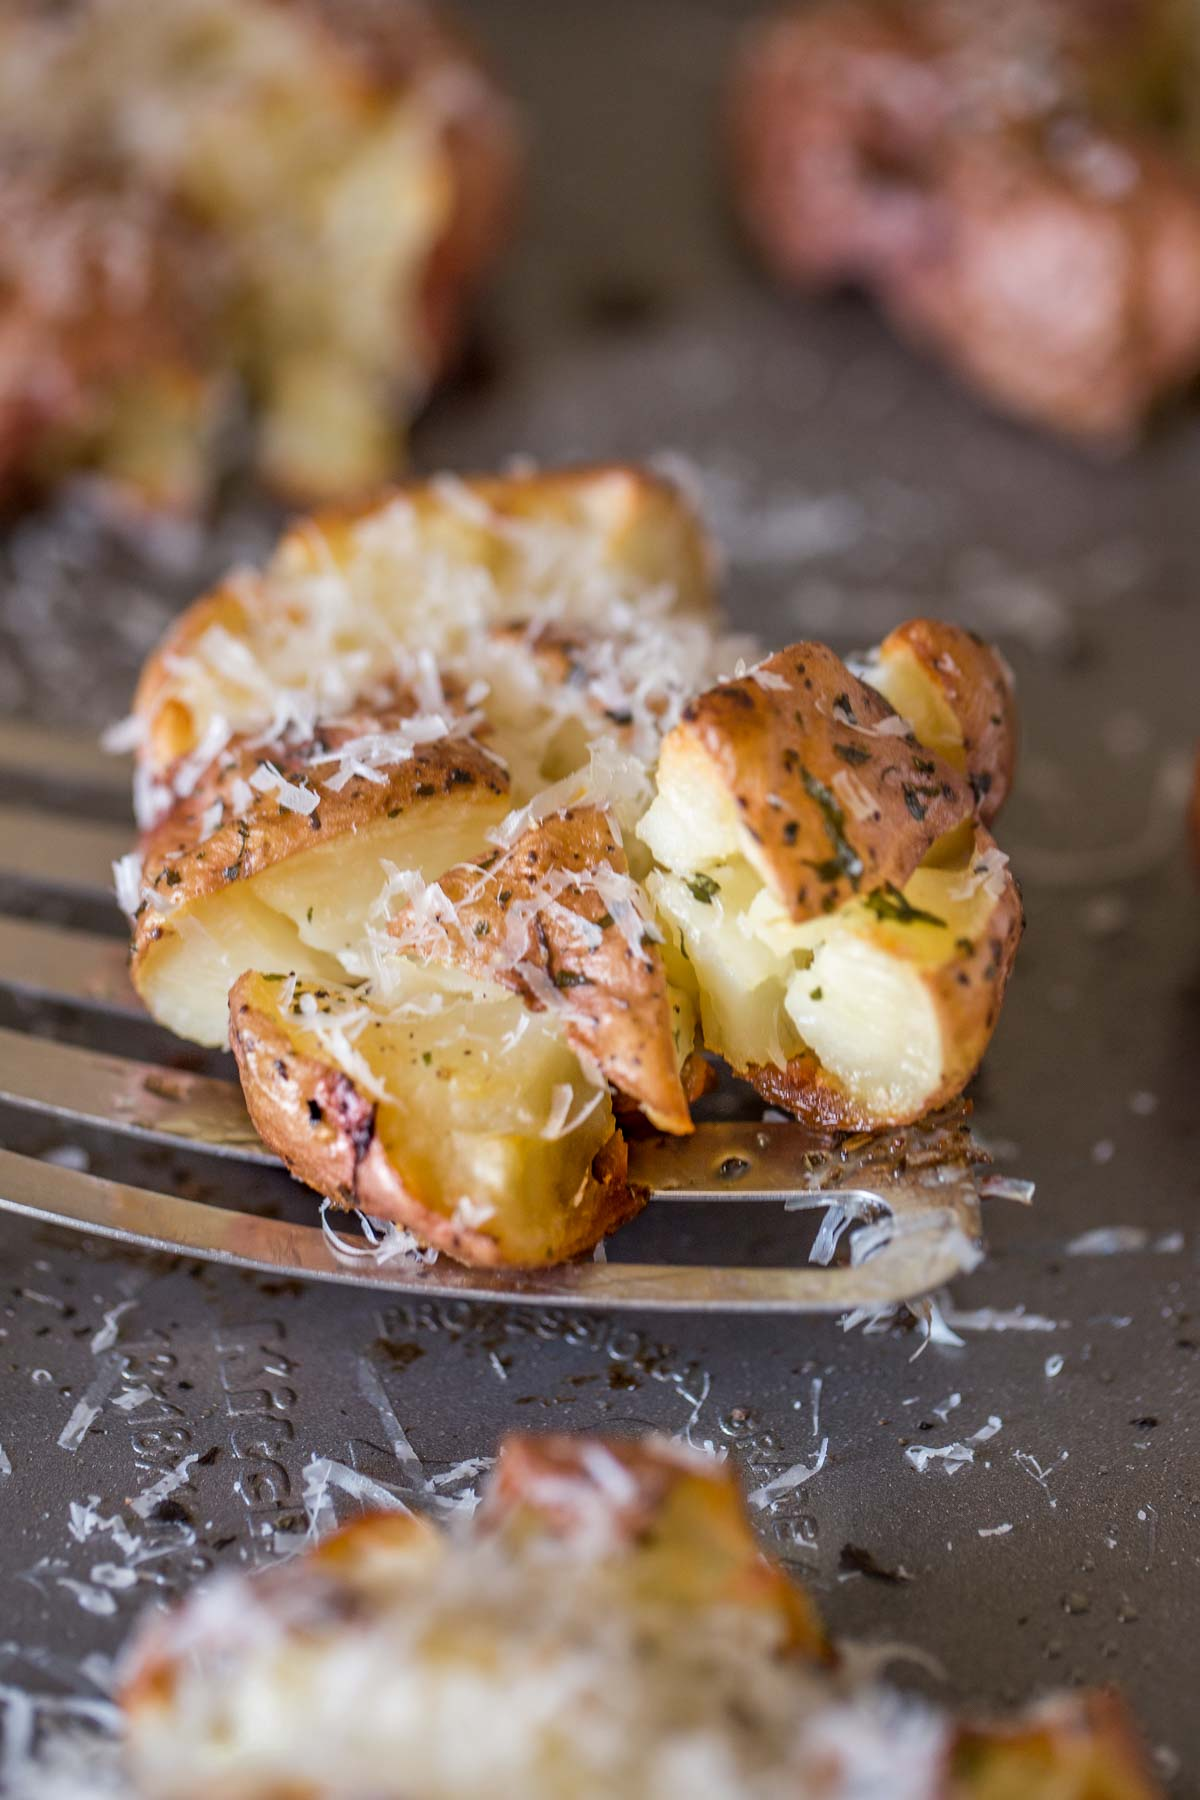 A spatula under a Smashed and Roasted Parmesan Potato on the baking sheet.